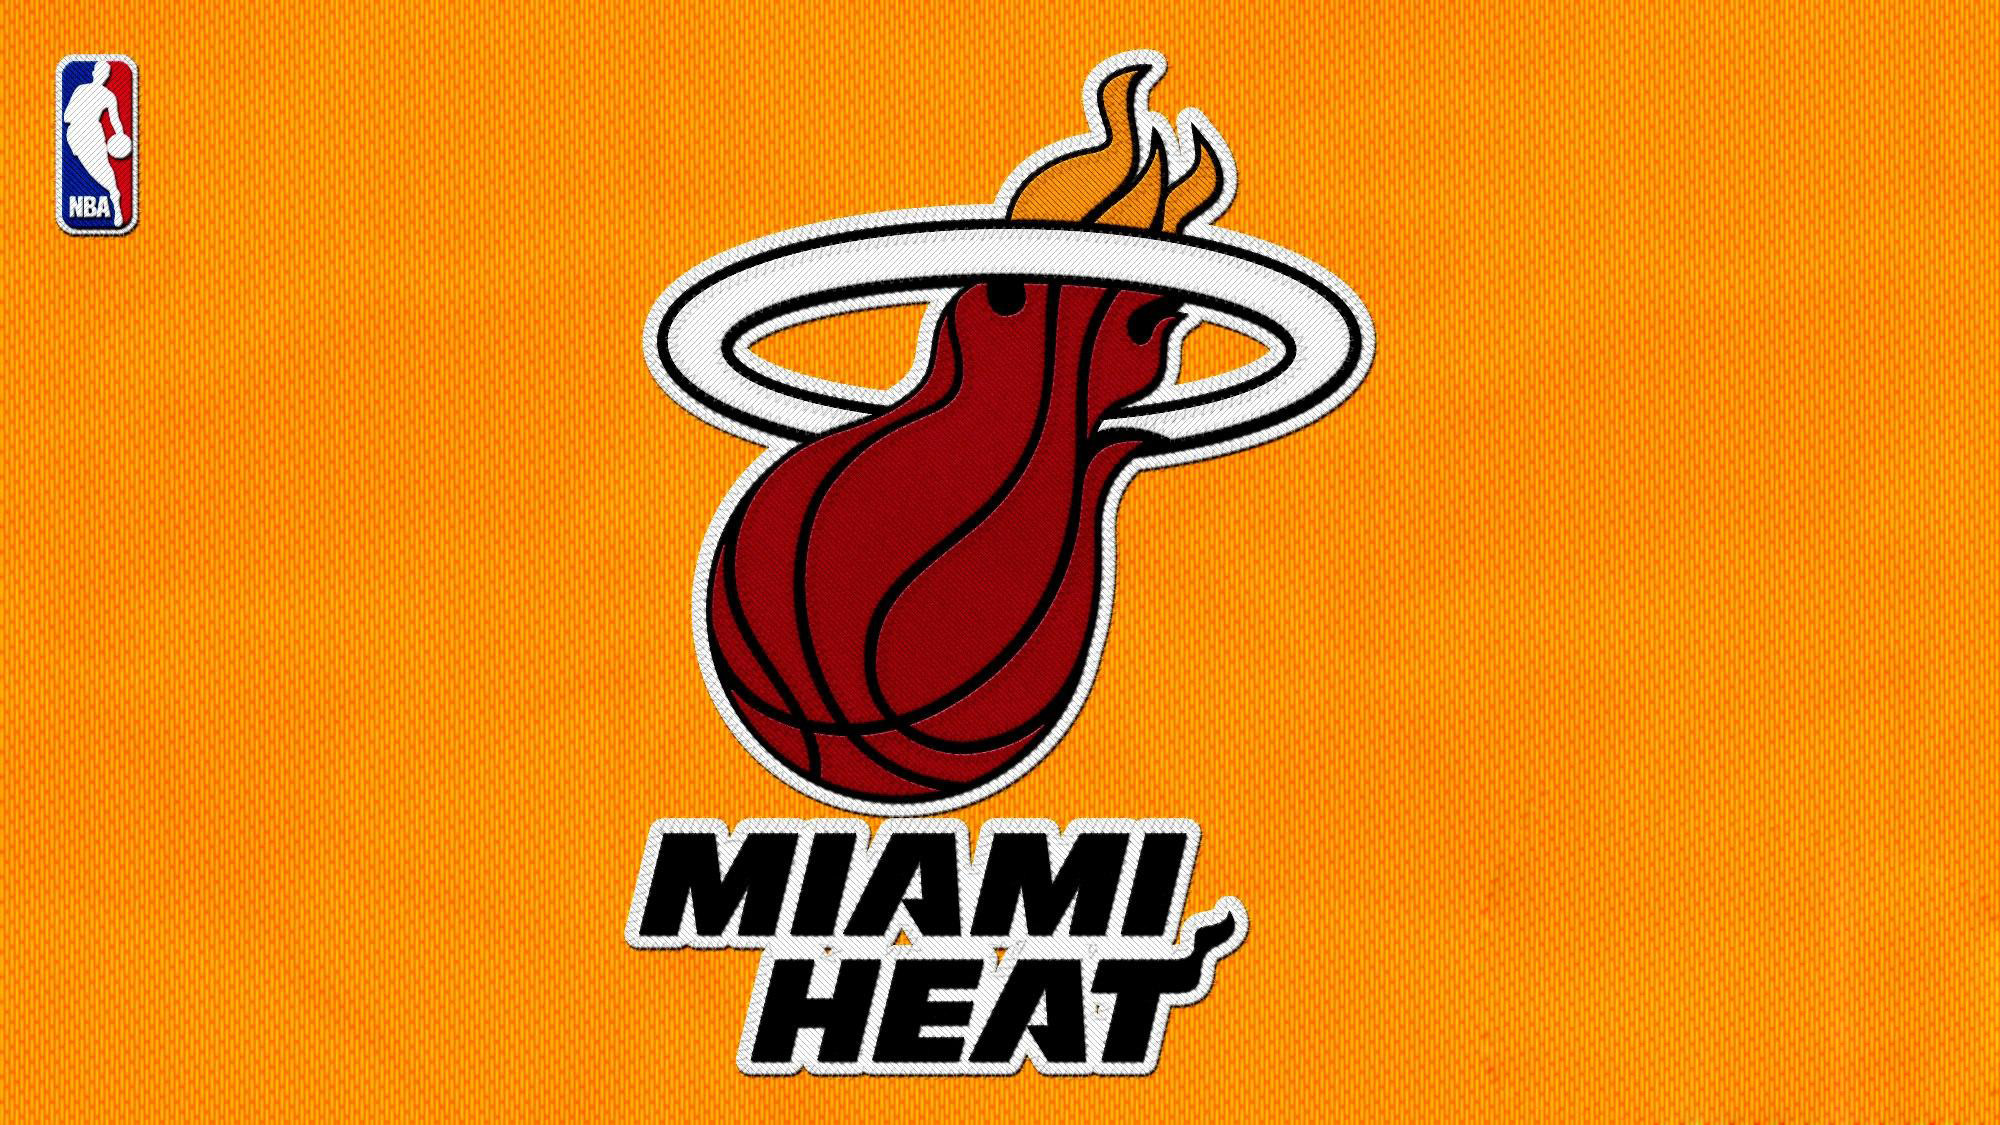 Miami Heat Wallpaper HD 72 images 2000x1125